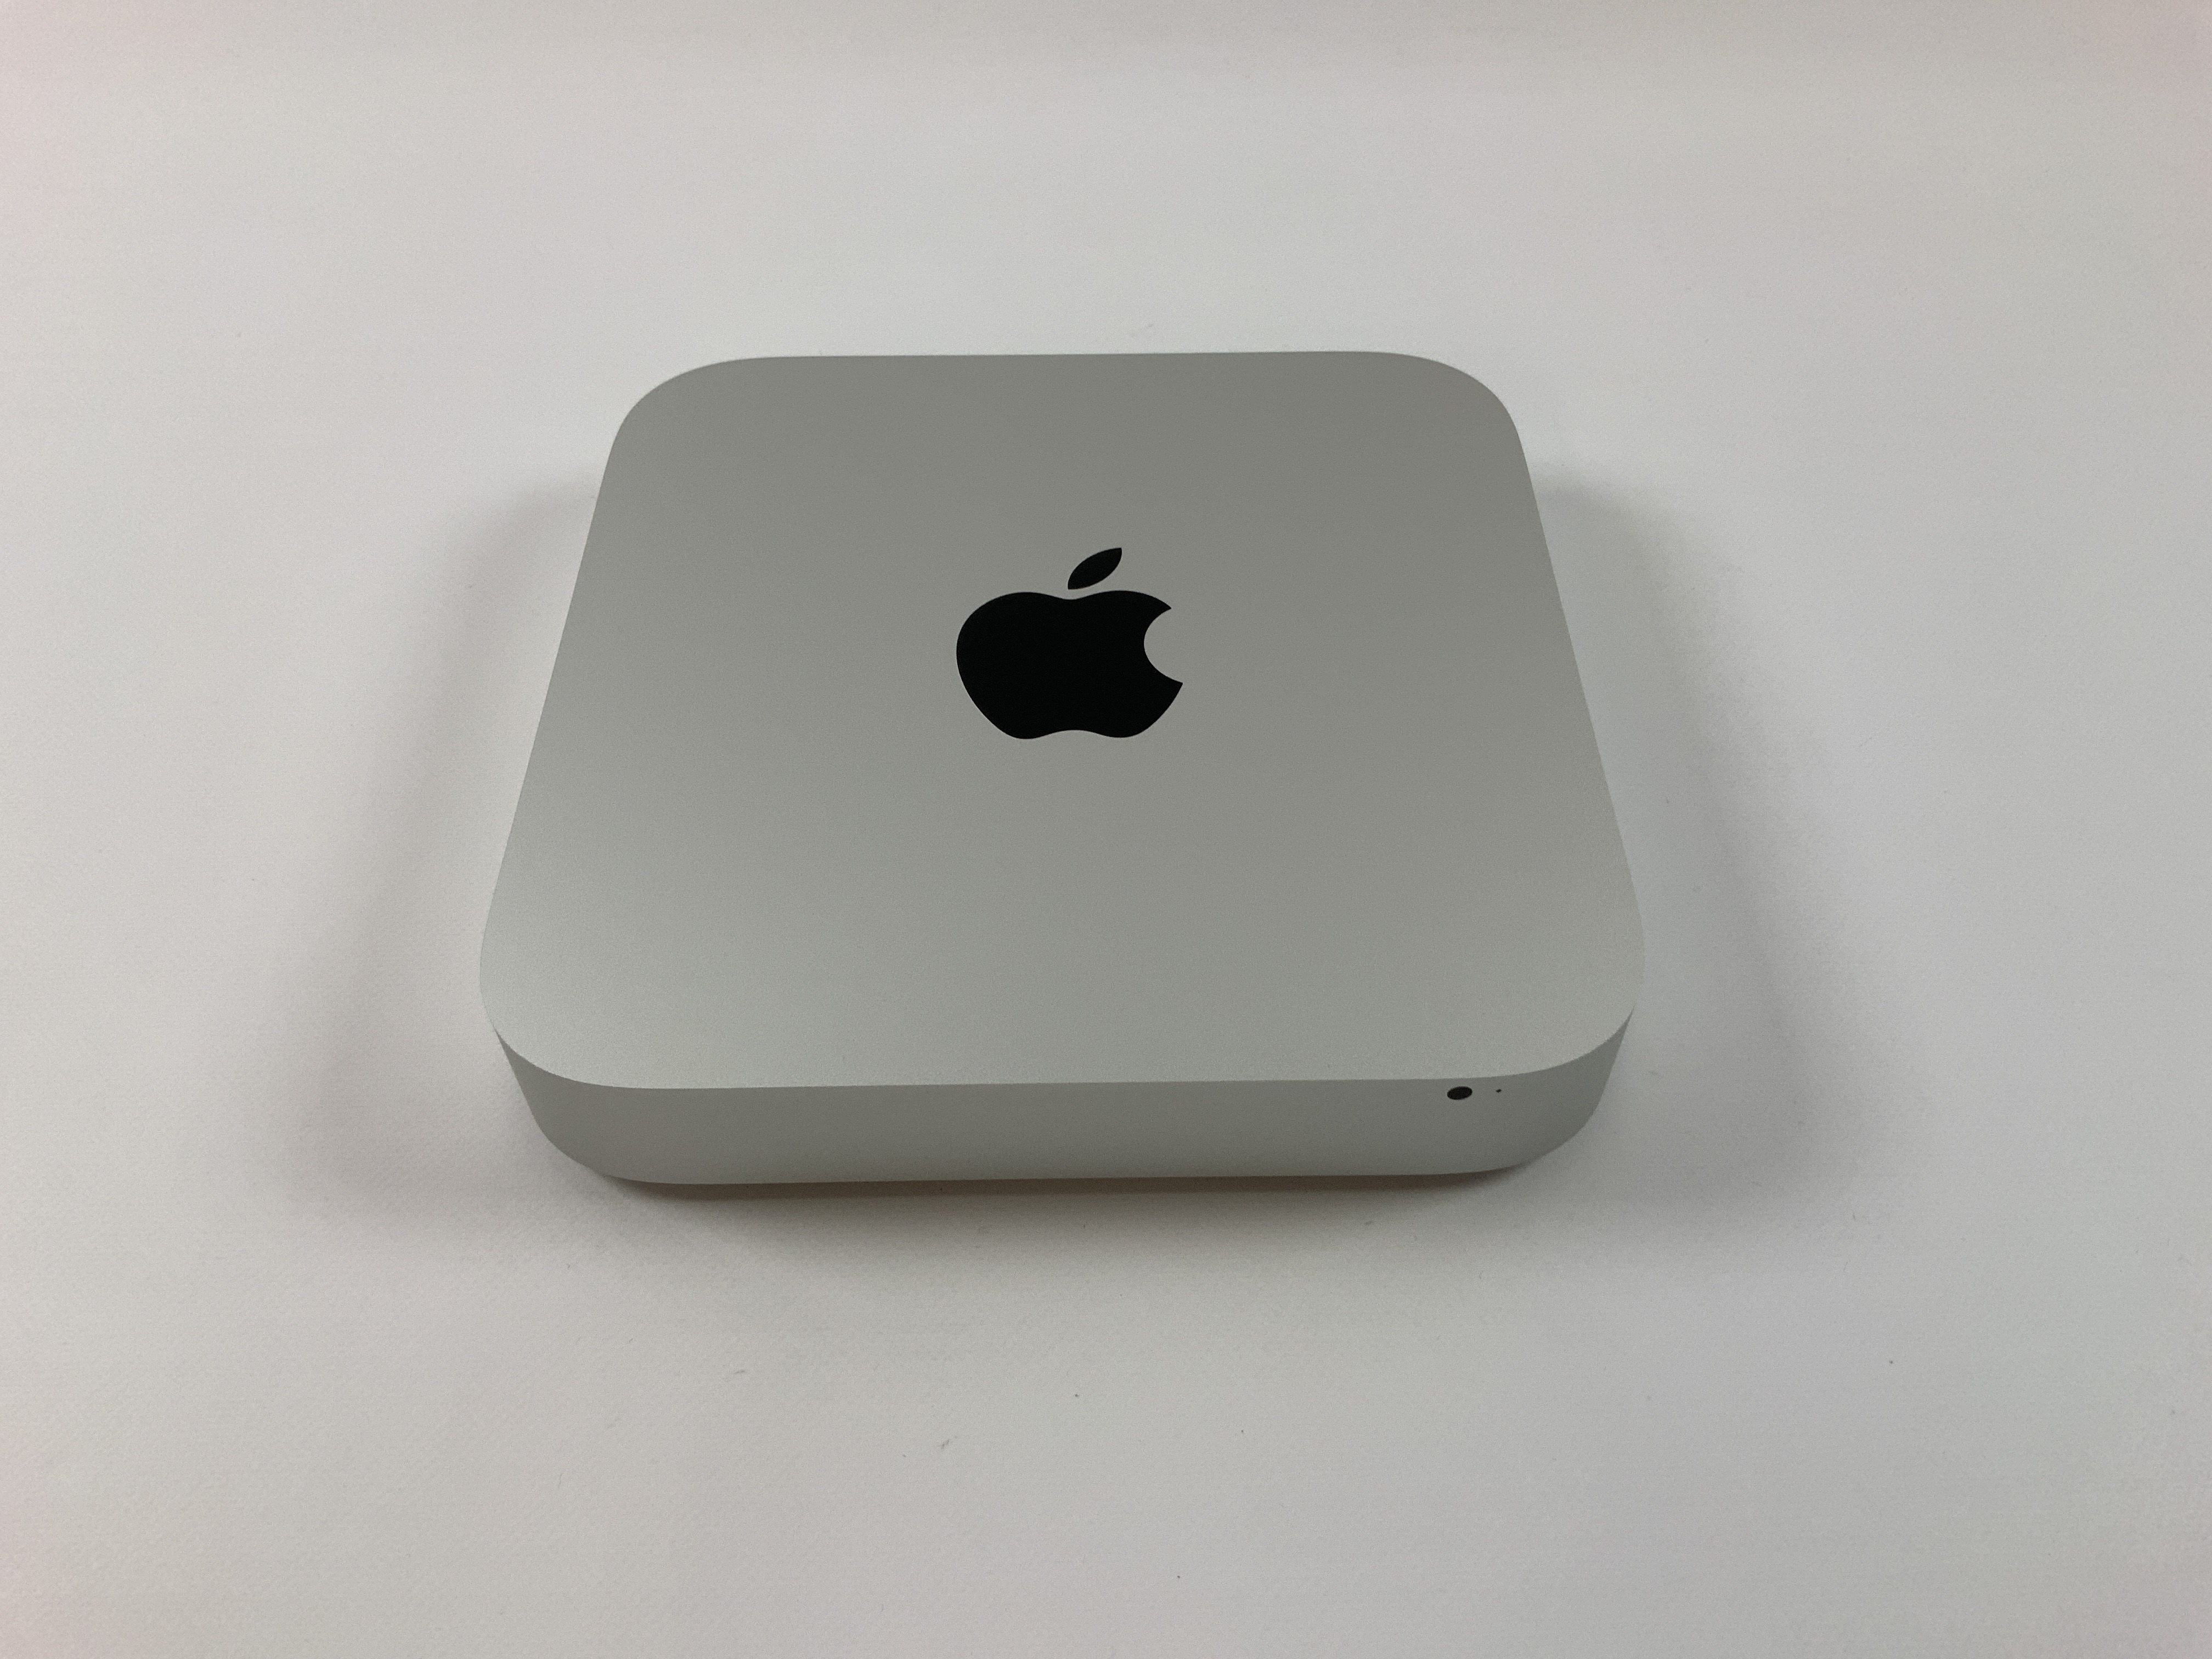 Mac Mini Late 2014 (Intel Core i5 2.6 GHz 16 GB RAM 1 TB HDD), Intel Core i5 2.6 GHz, 16 GB RAM, 1 TB HDD, image 1